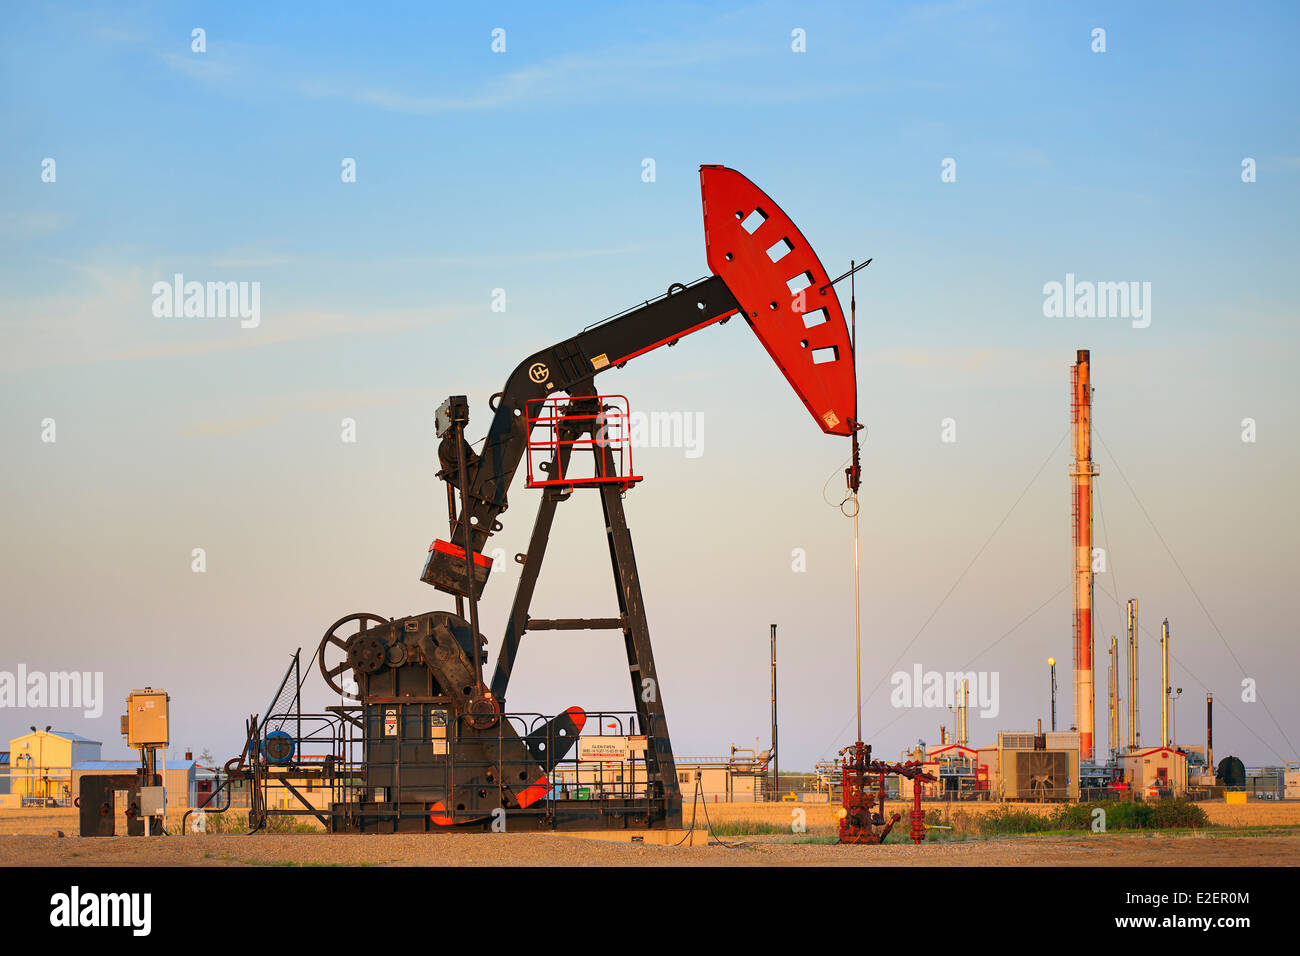 Oil Well Pump Jack With Liquid Natural Gas Plant In